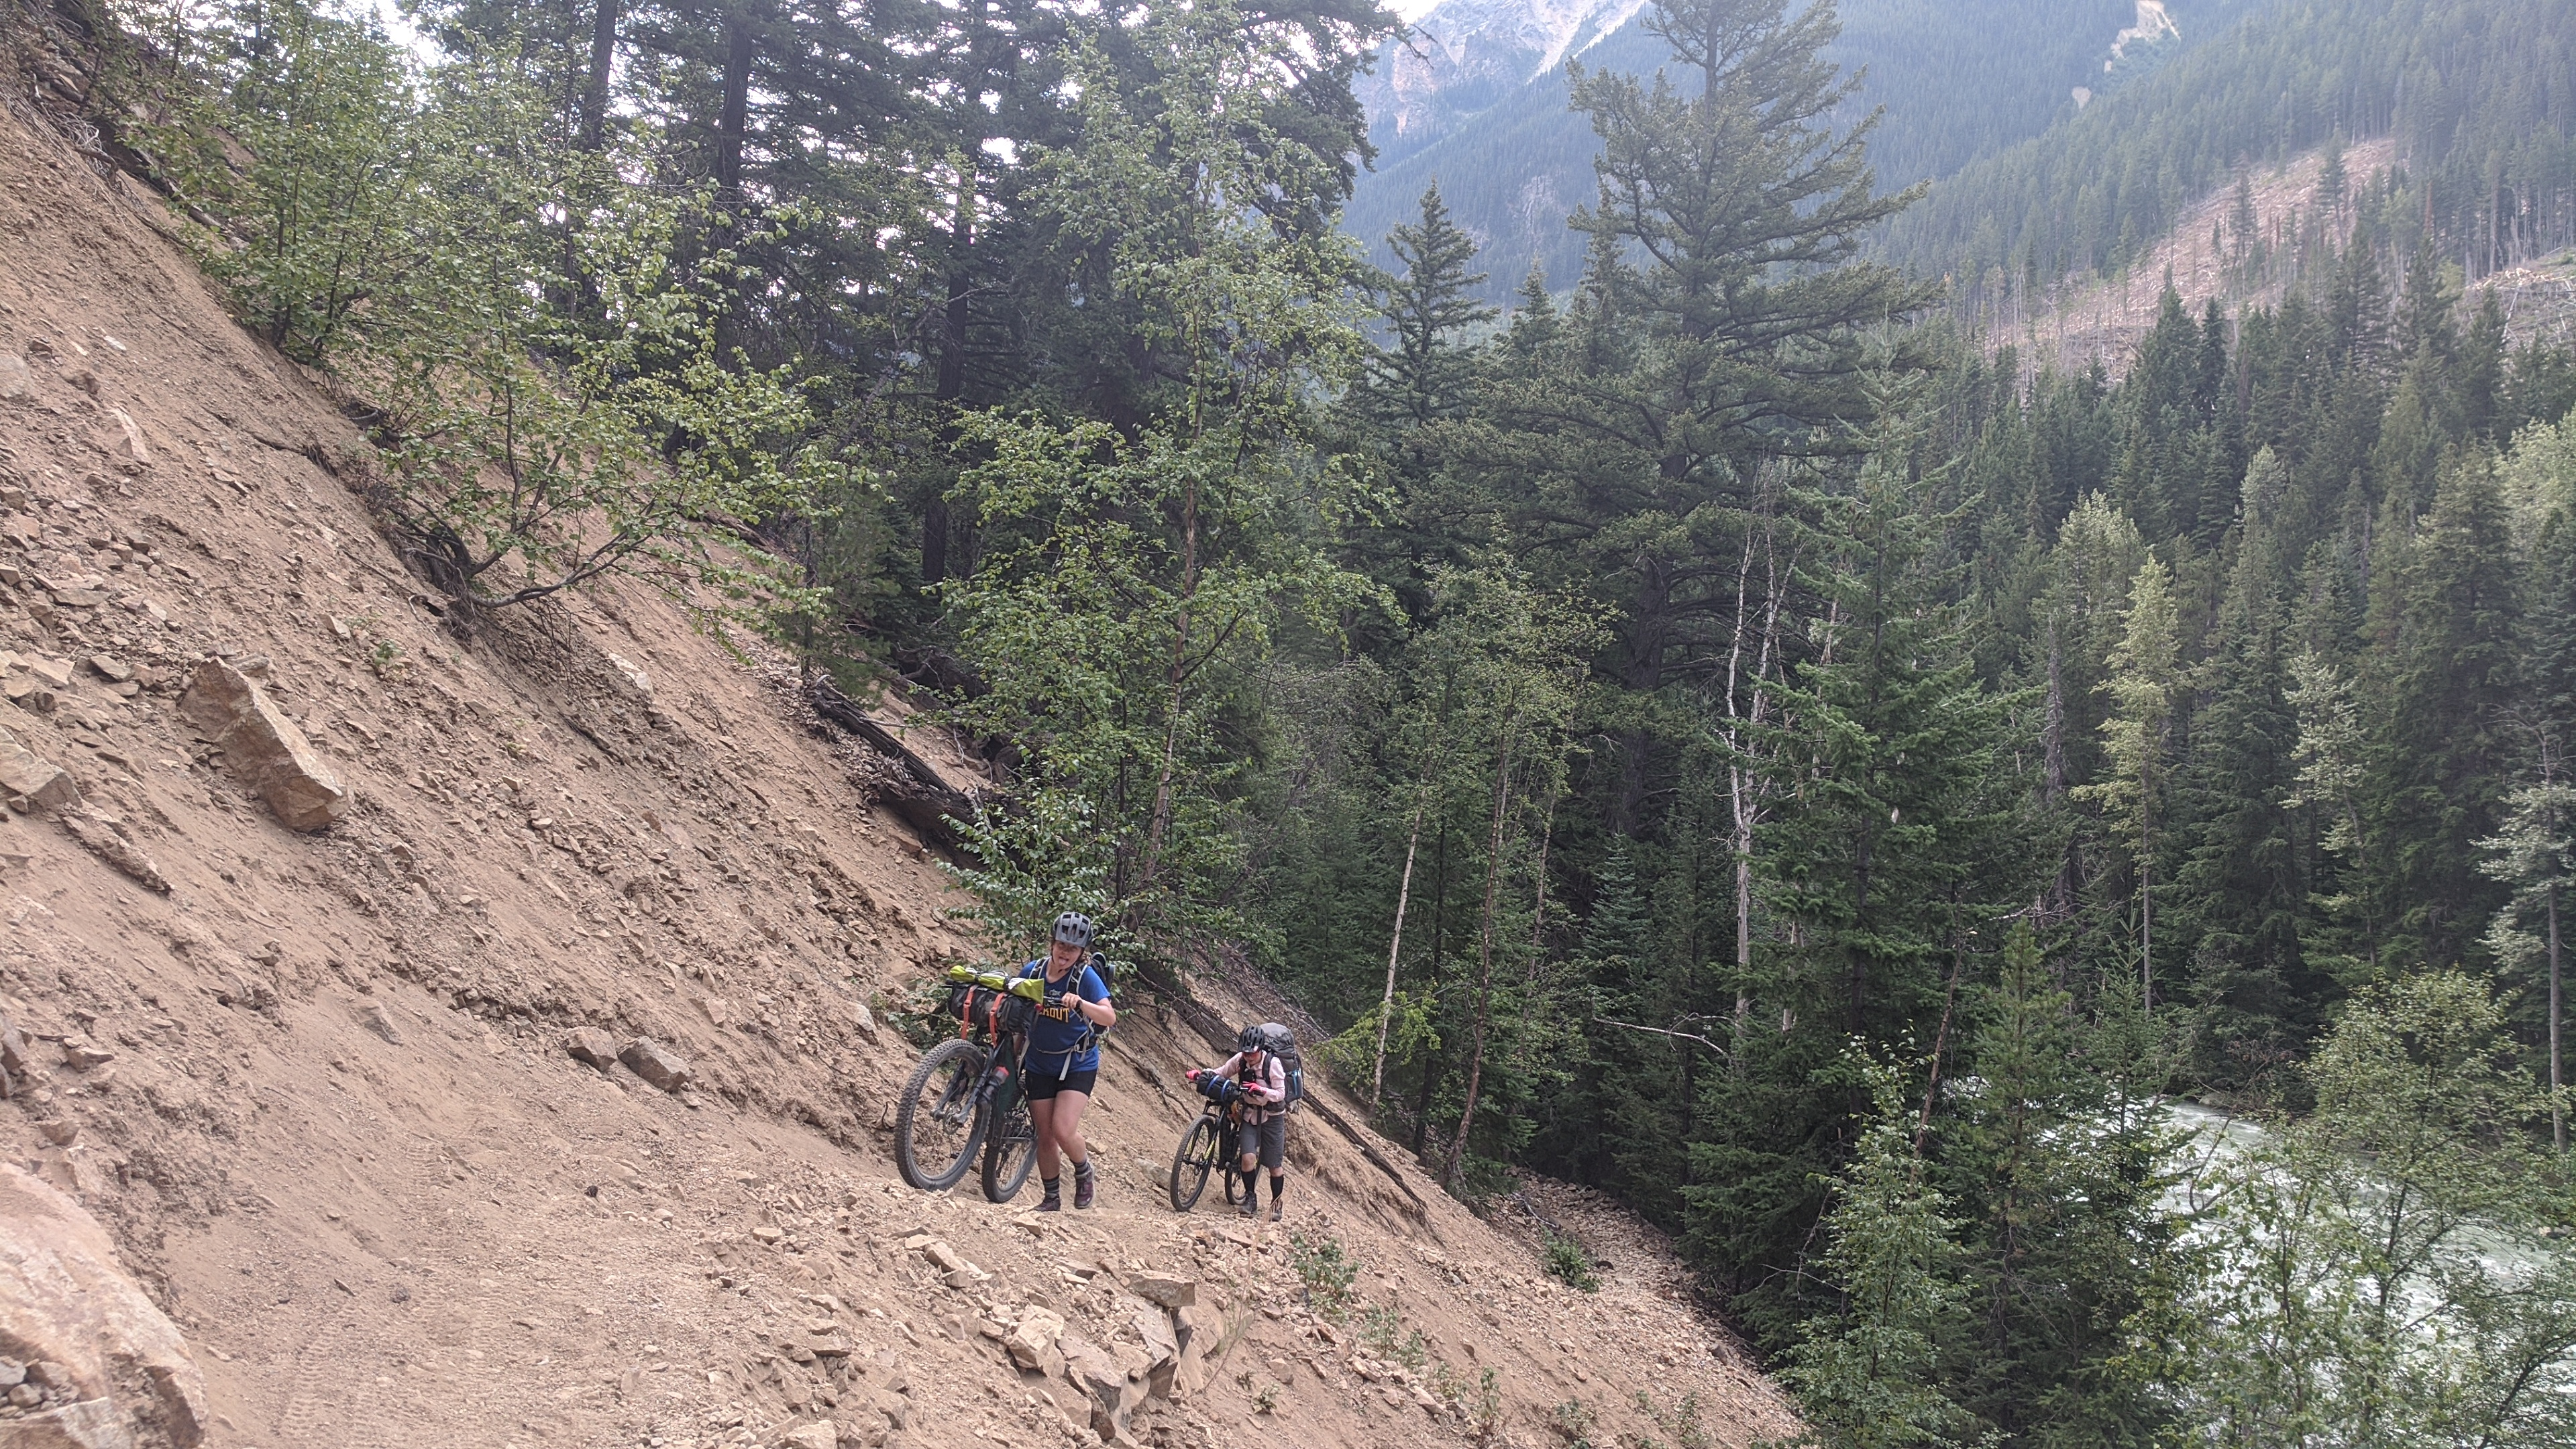 Melissa and Shuyu hike-a-bike on the washed-out scree slope